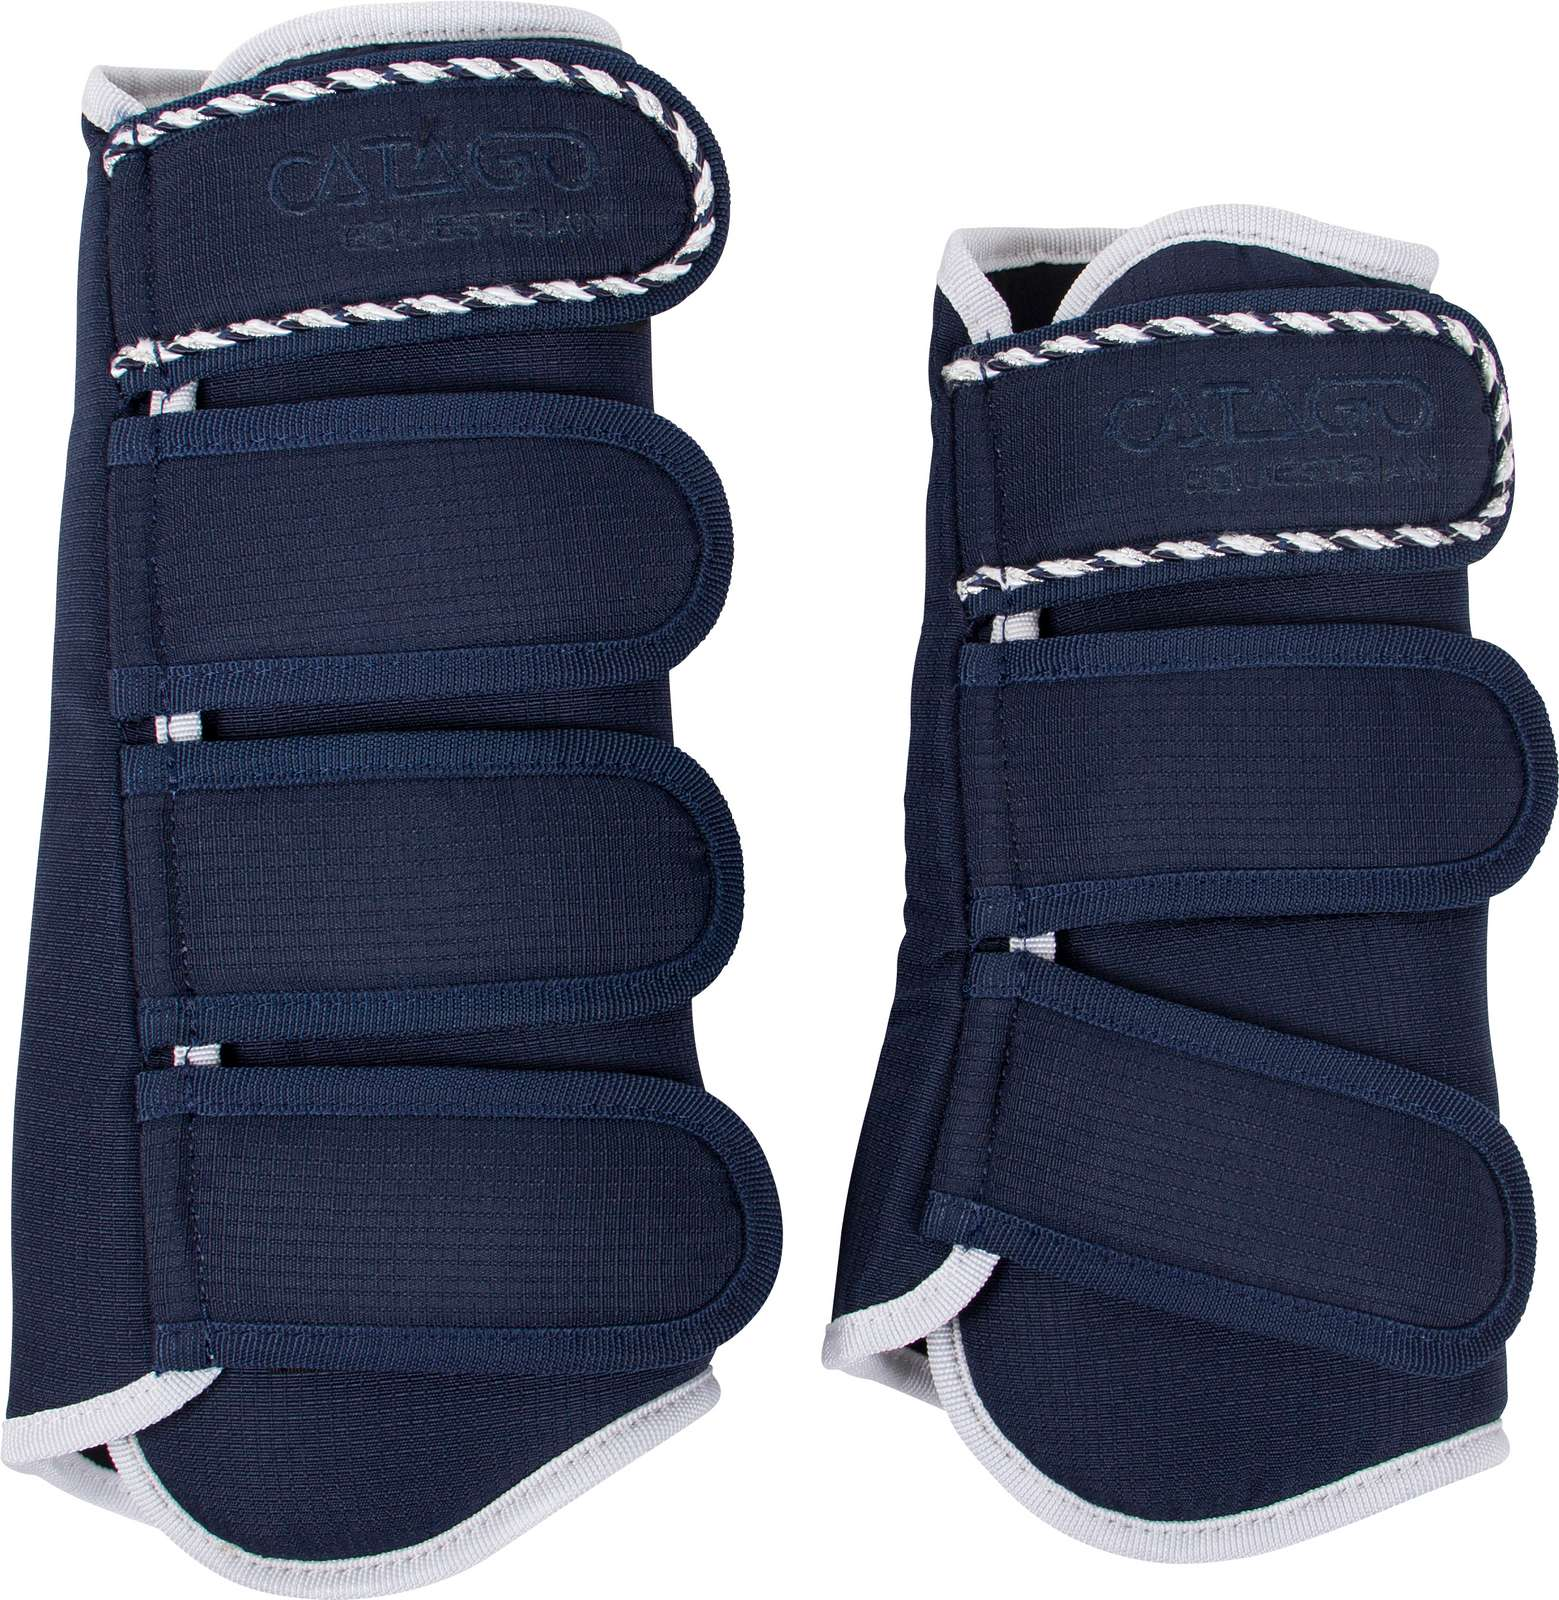 CATAGO Diamond Brushing Boots - Navy / White - Divine Equestrian